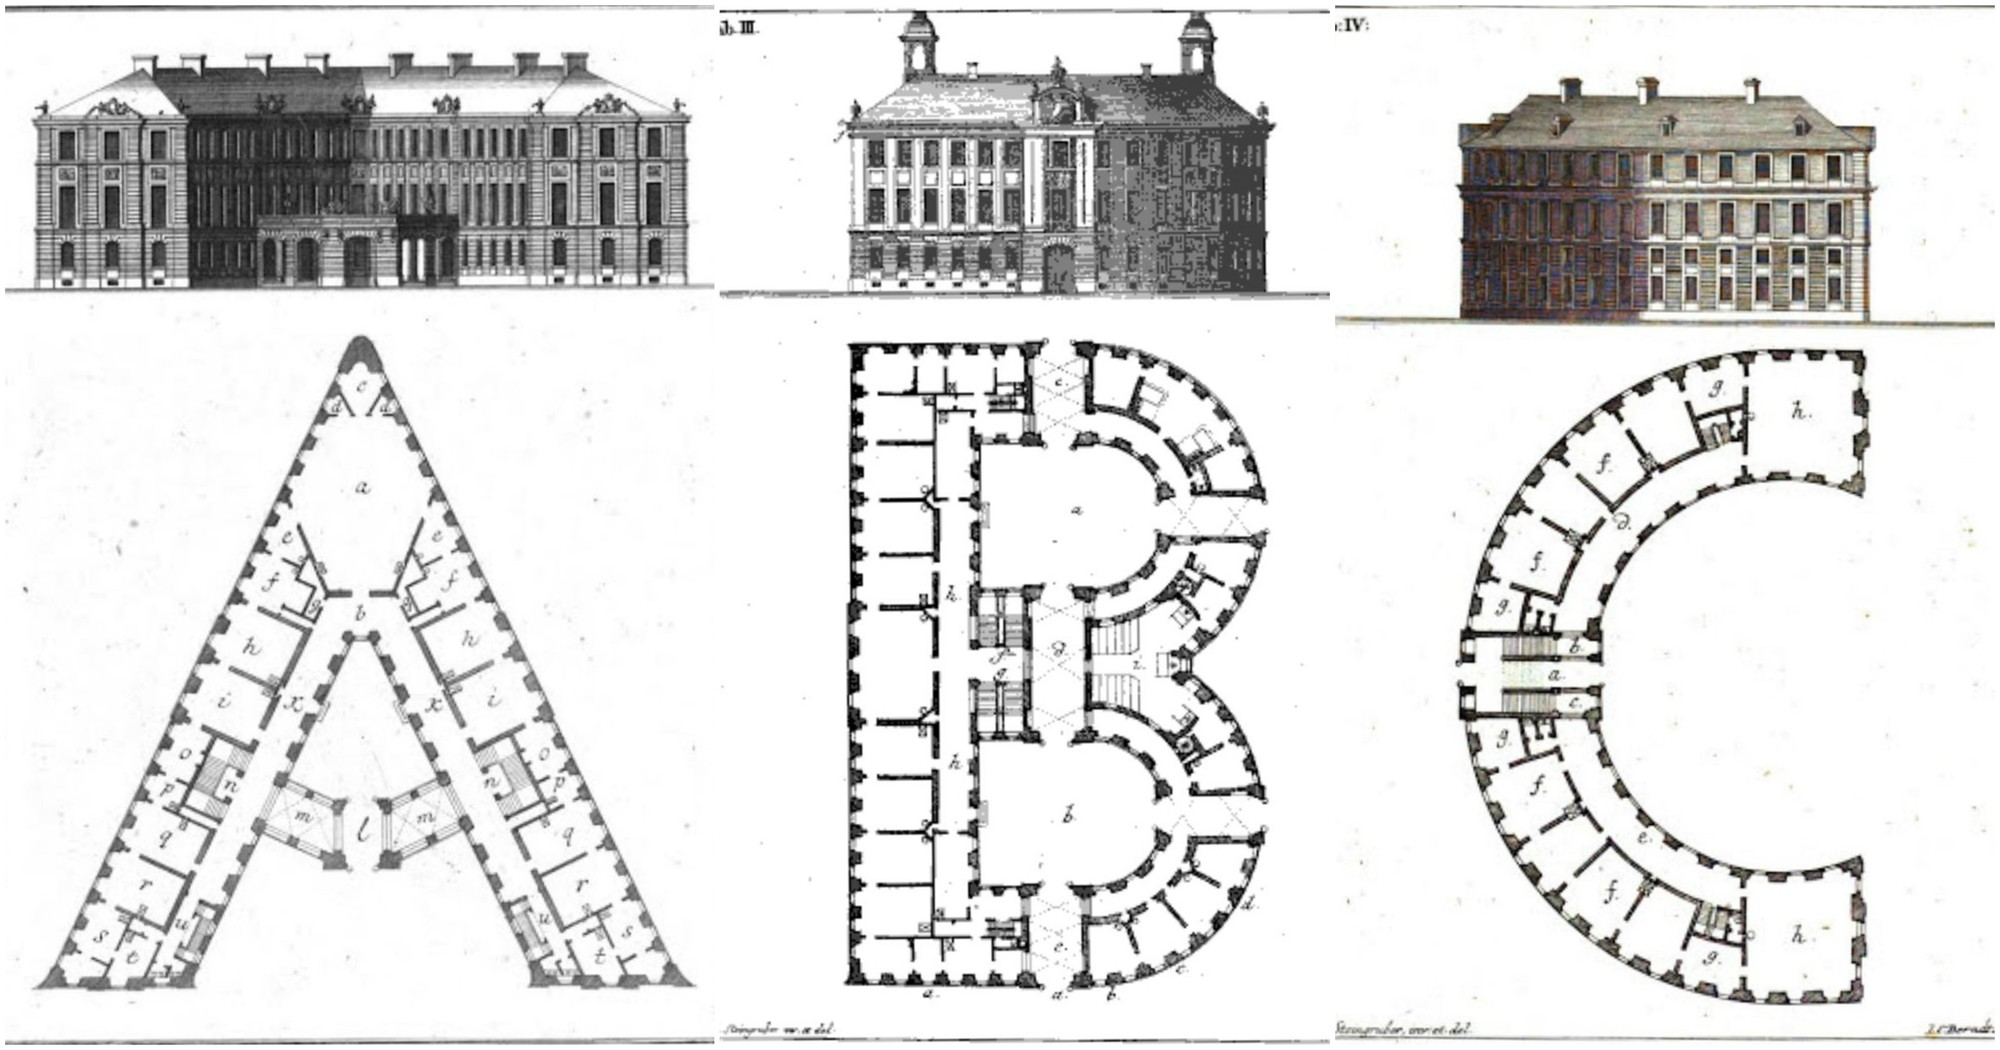 Here S What The Alphabet Looks Like When Converted Into Baroque Palace Designs Archdaily